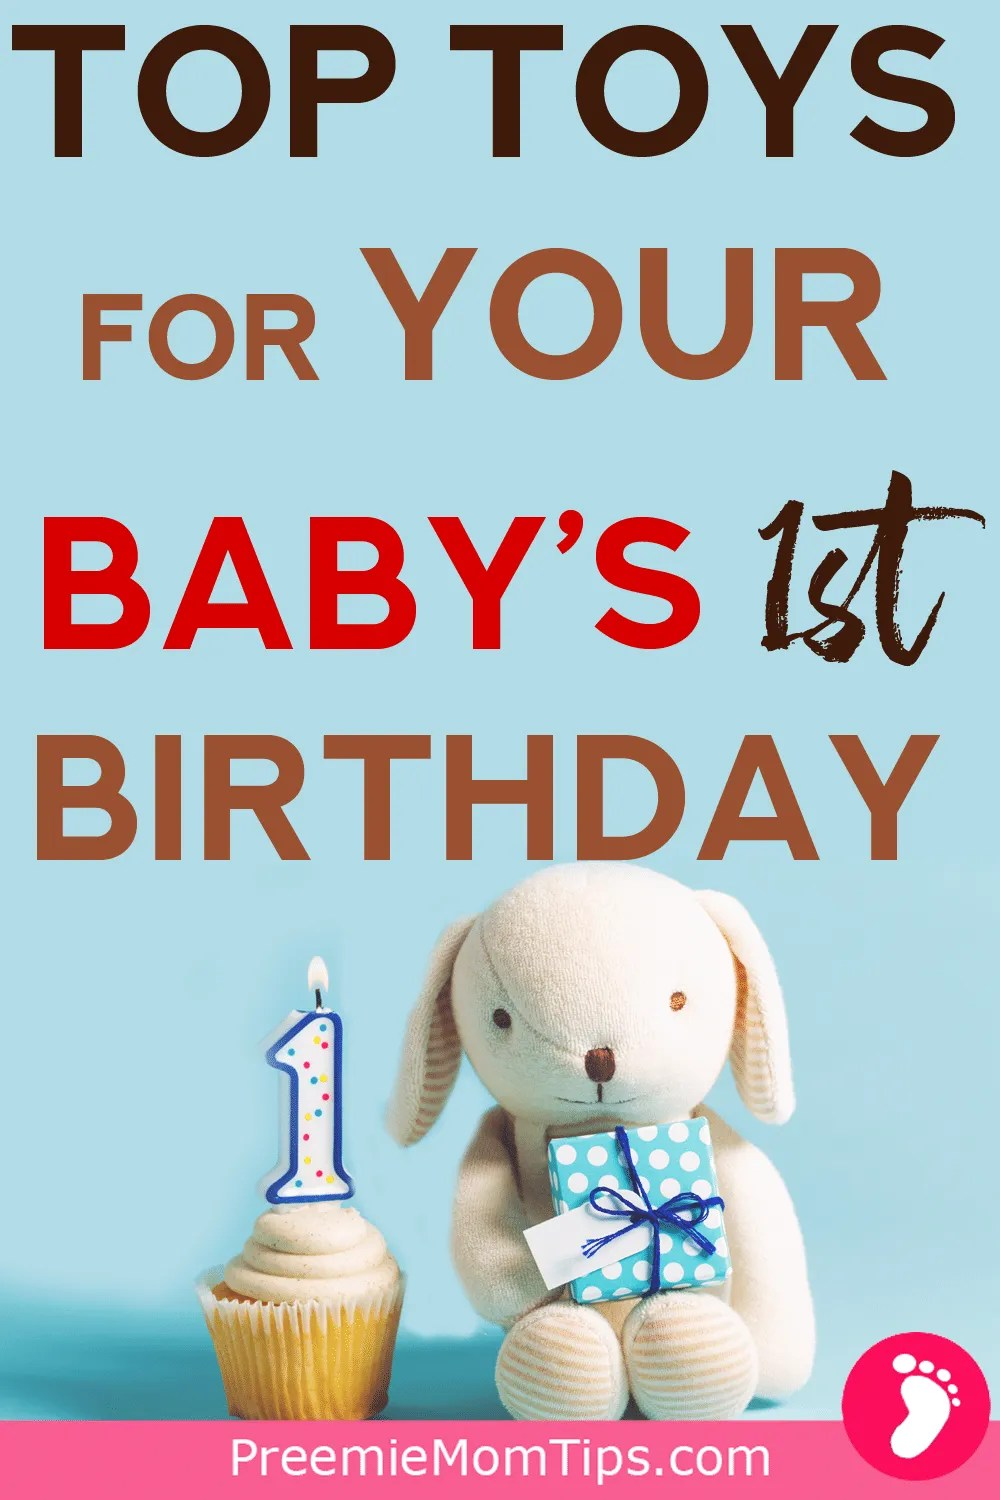 Getting ready for your baby's first birthday? Check out the best affordable toys for your baby's development!